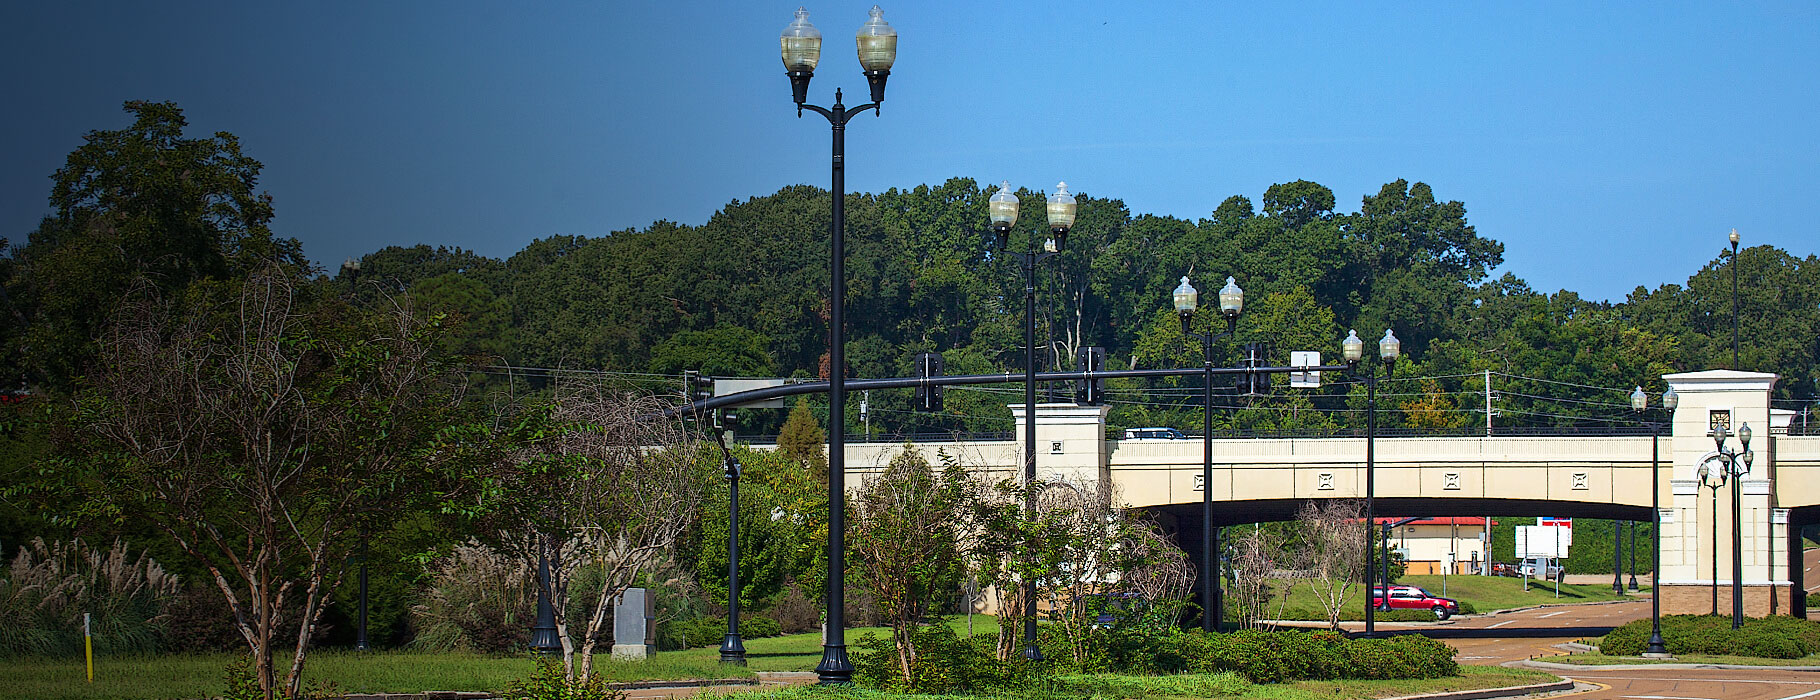 Whatley Composite Light Poles for Outdoor Lighting